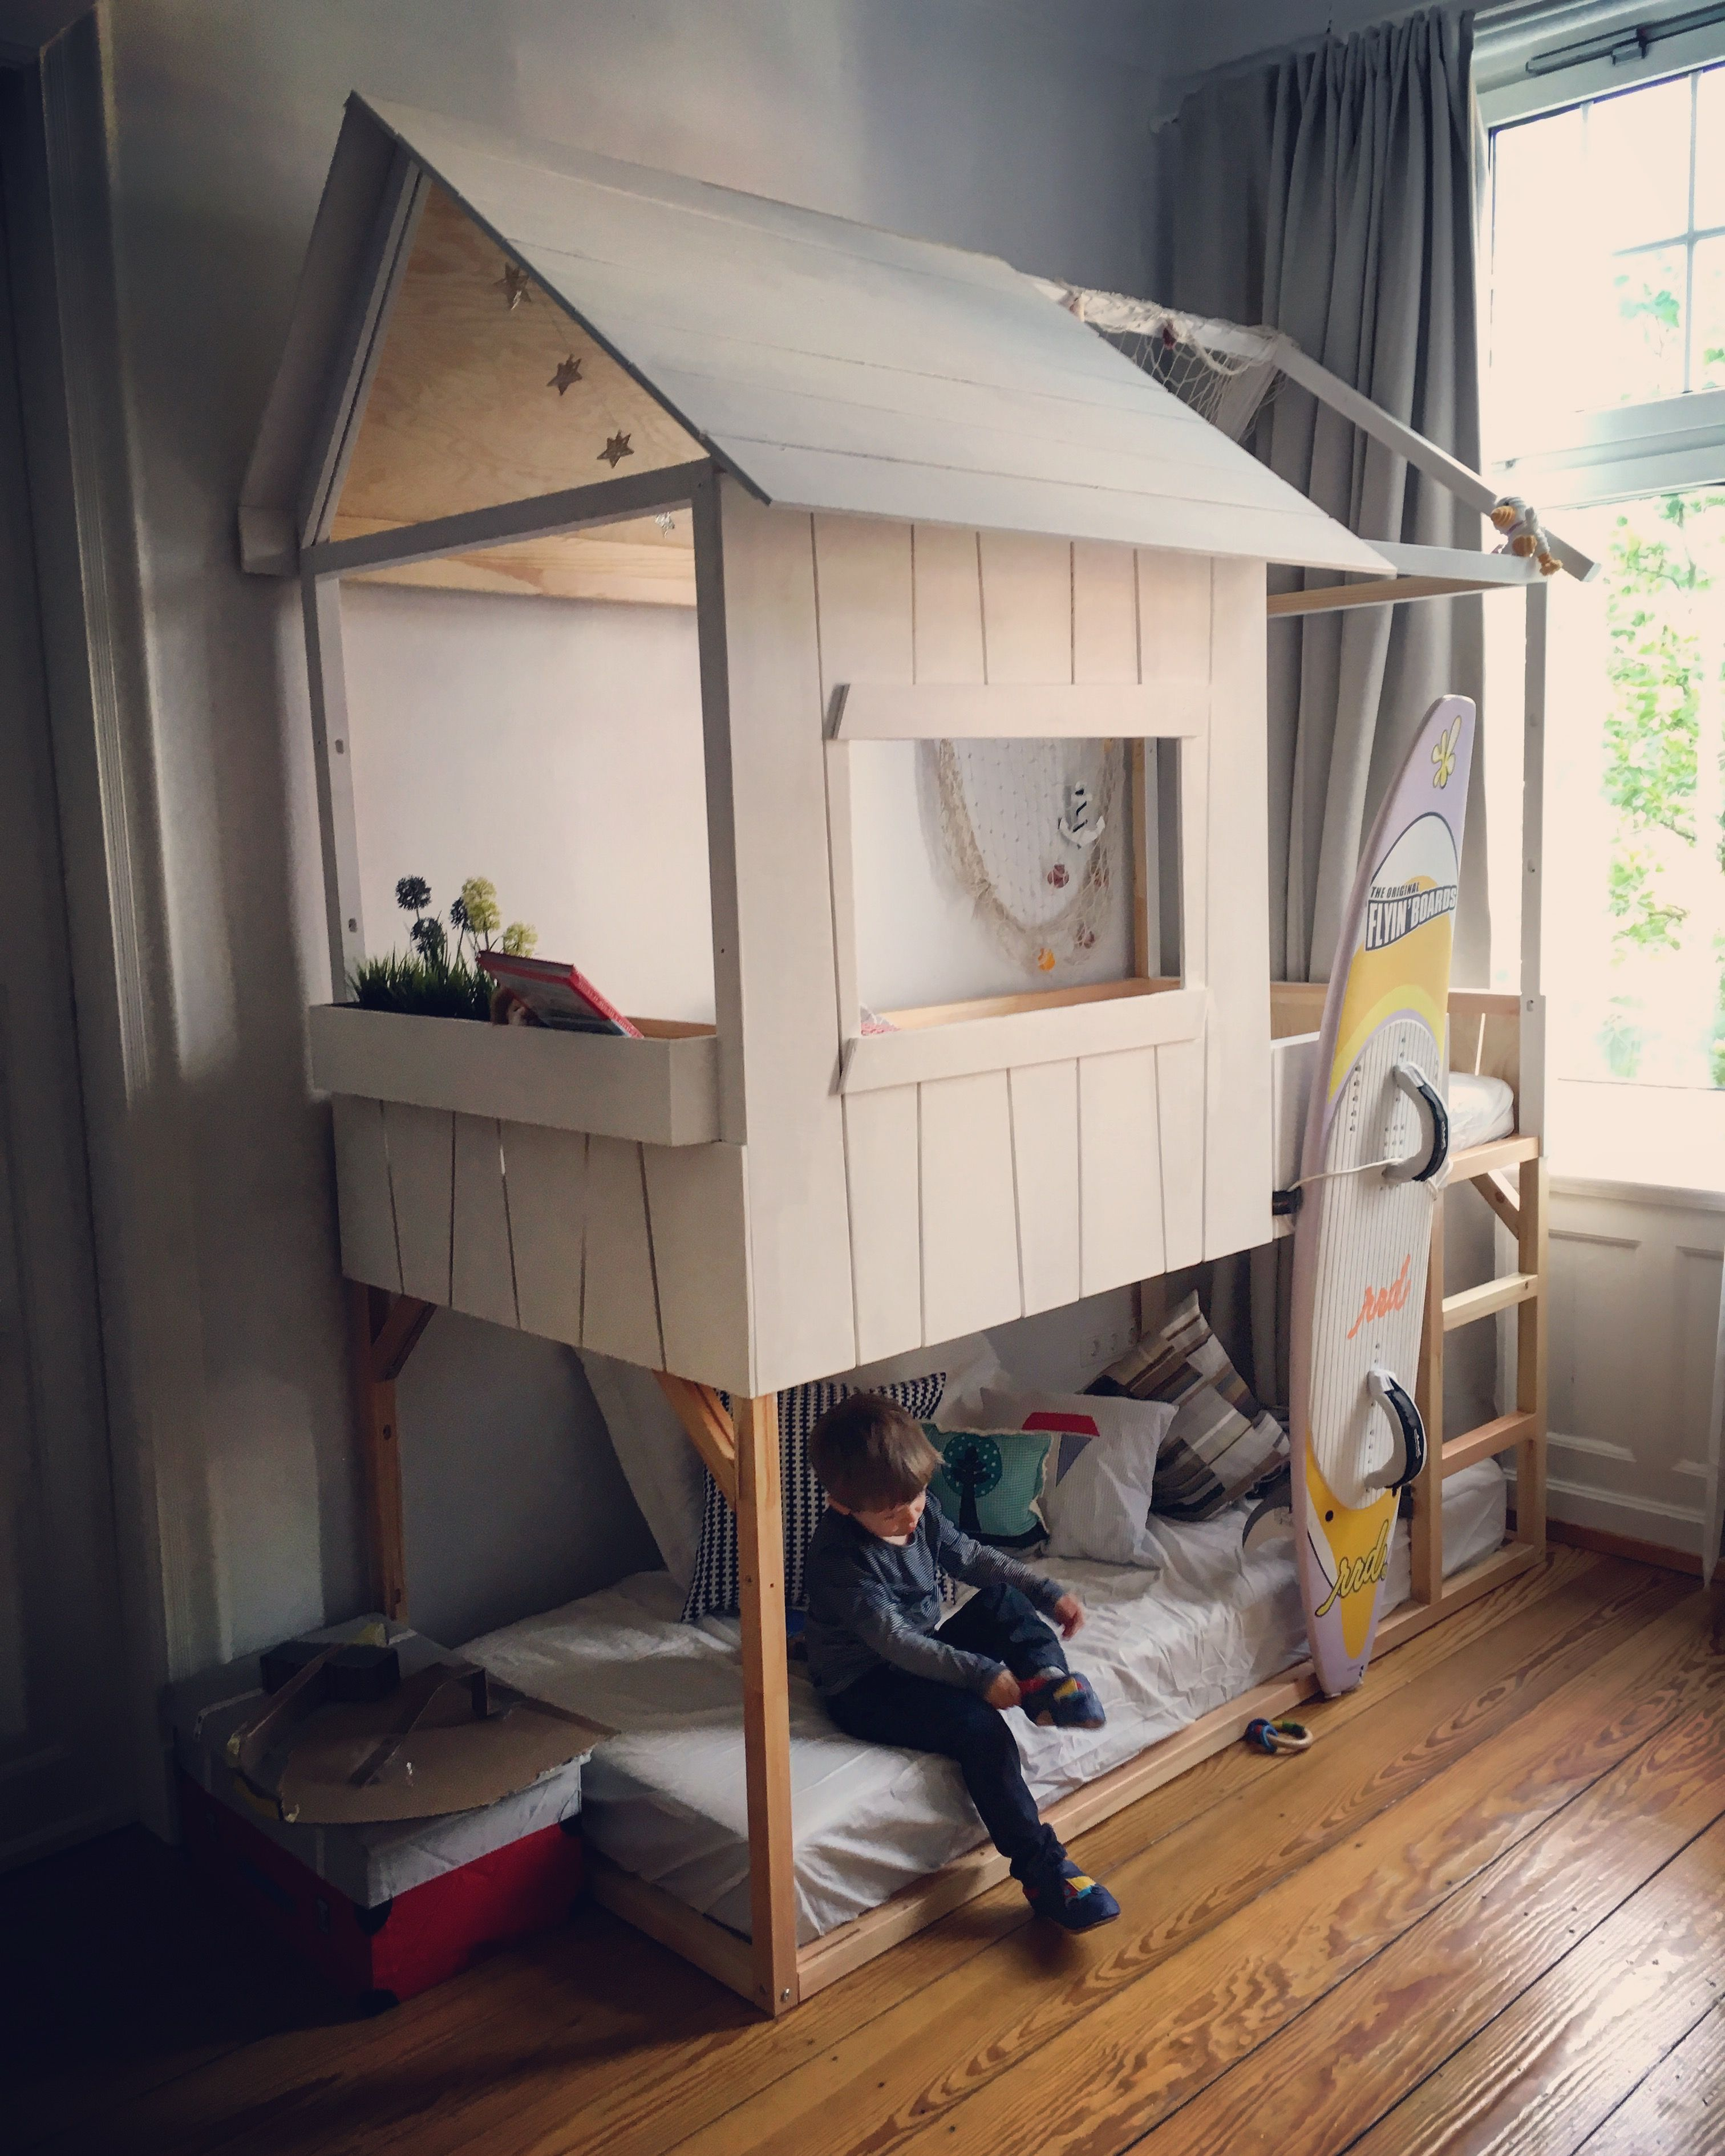 Hochbett Rutsche Ikea Ikea Double Kura Hack Two Kura Beds Made To One Playhouse